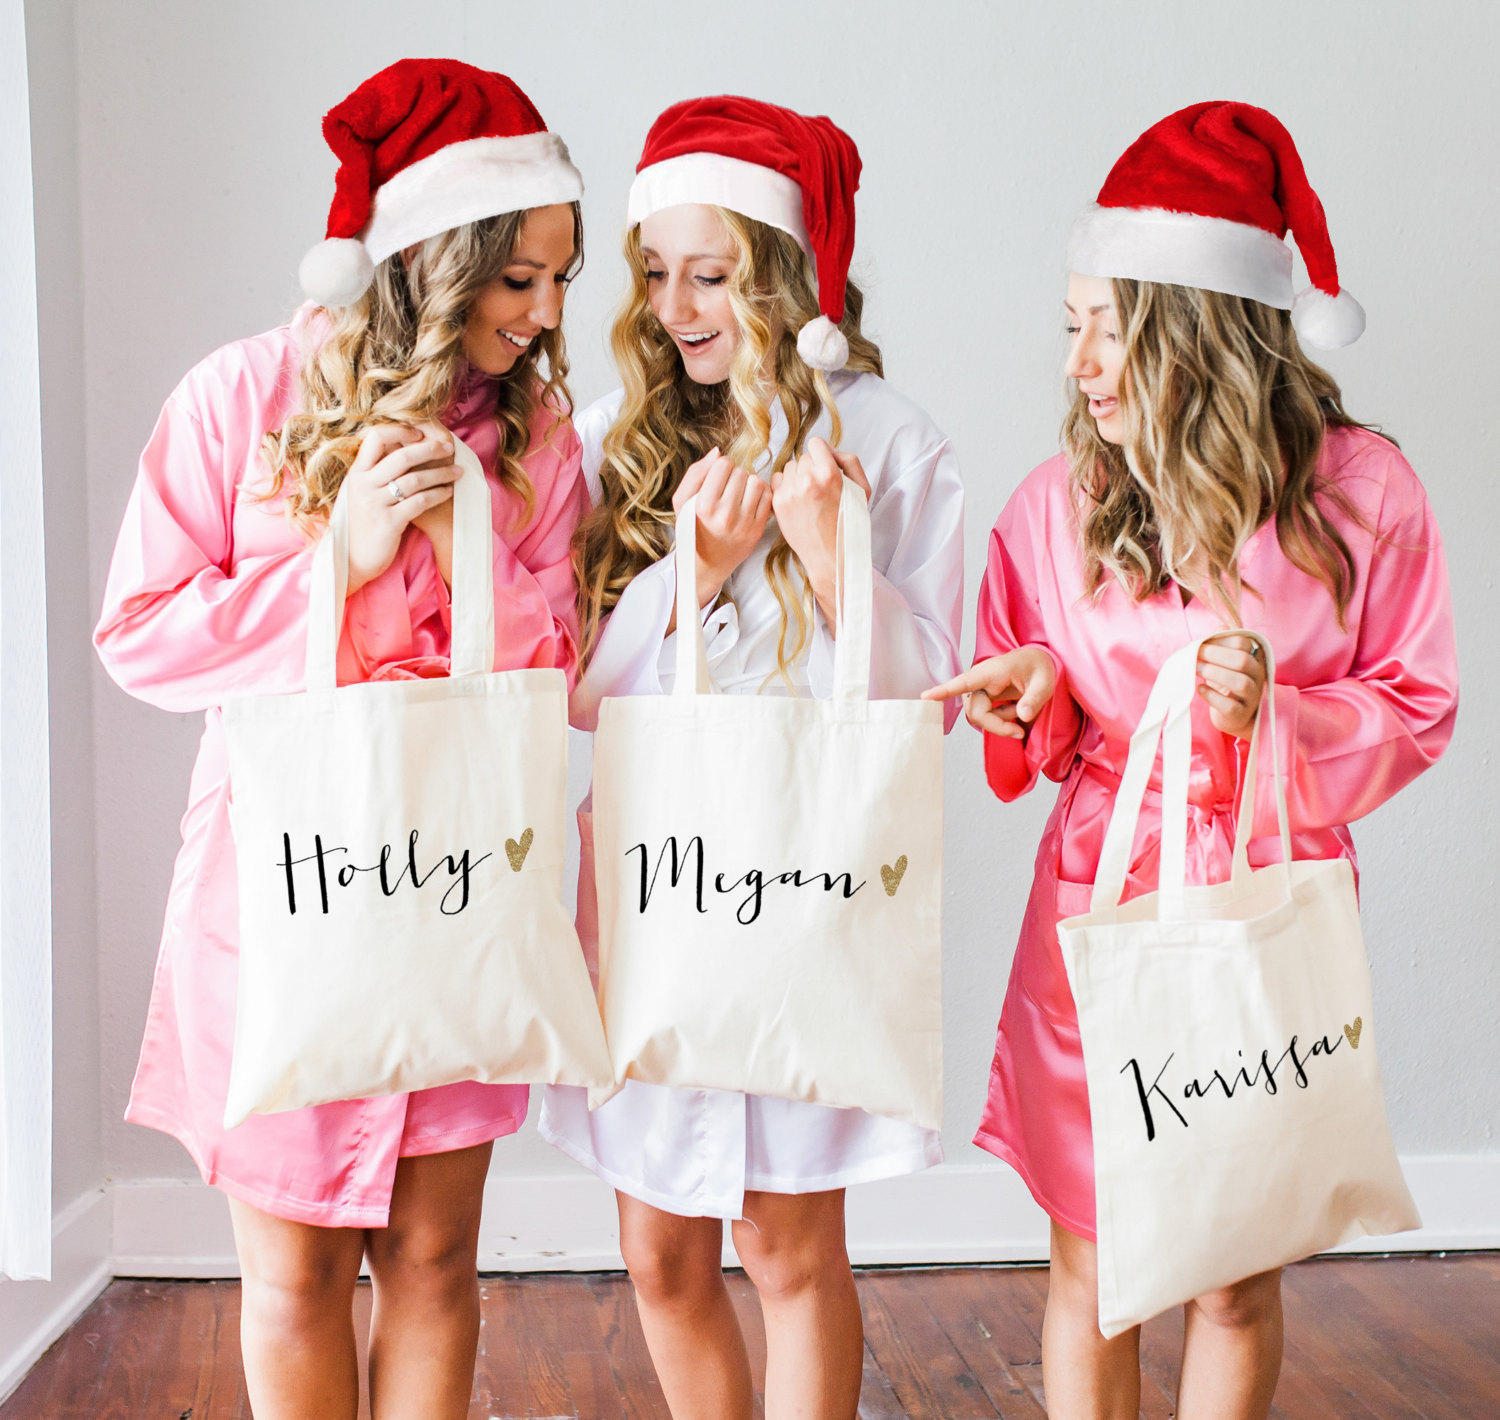 Bridesmaid Gifts From Bride: Personalized Tote Bags For Bridesmaids In Cute Font